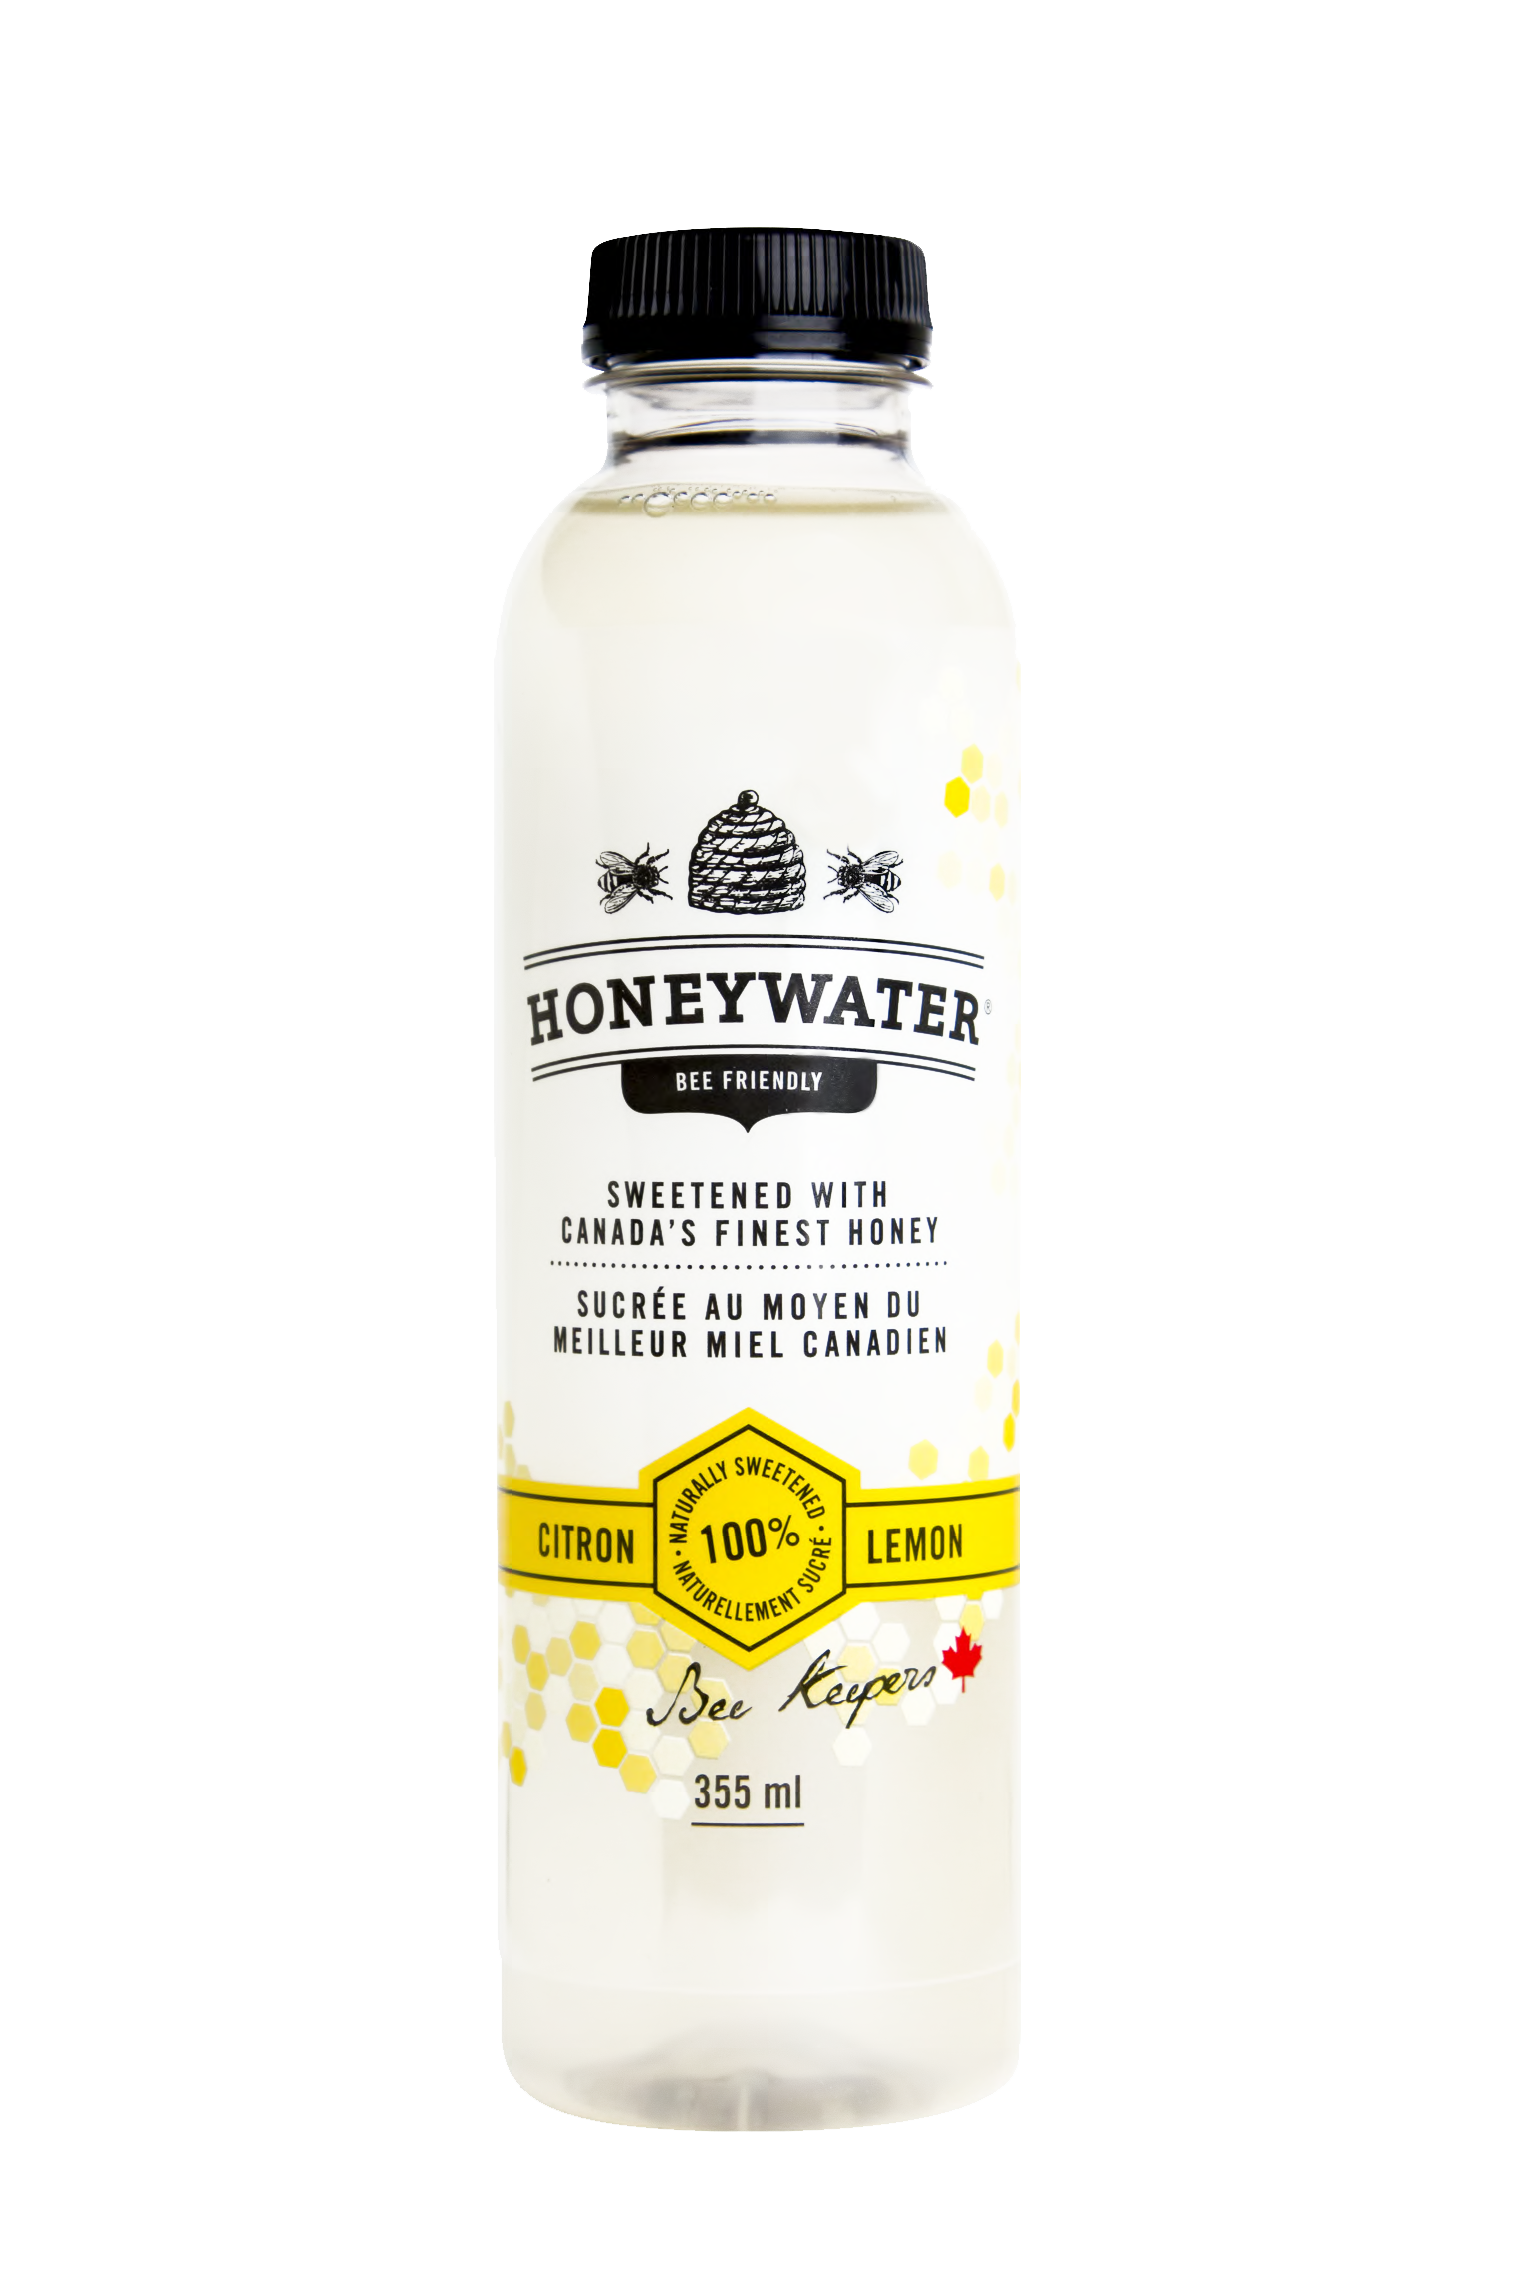 Honeywater Packaging Design